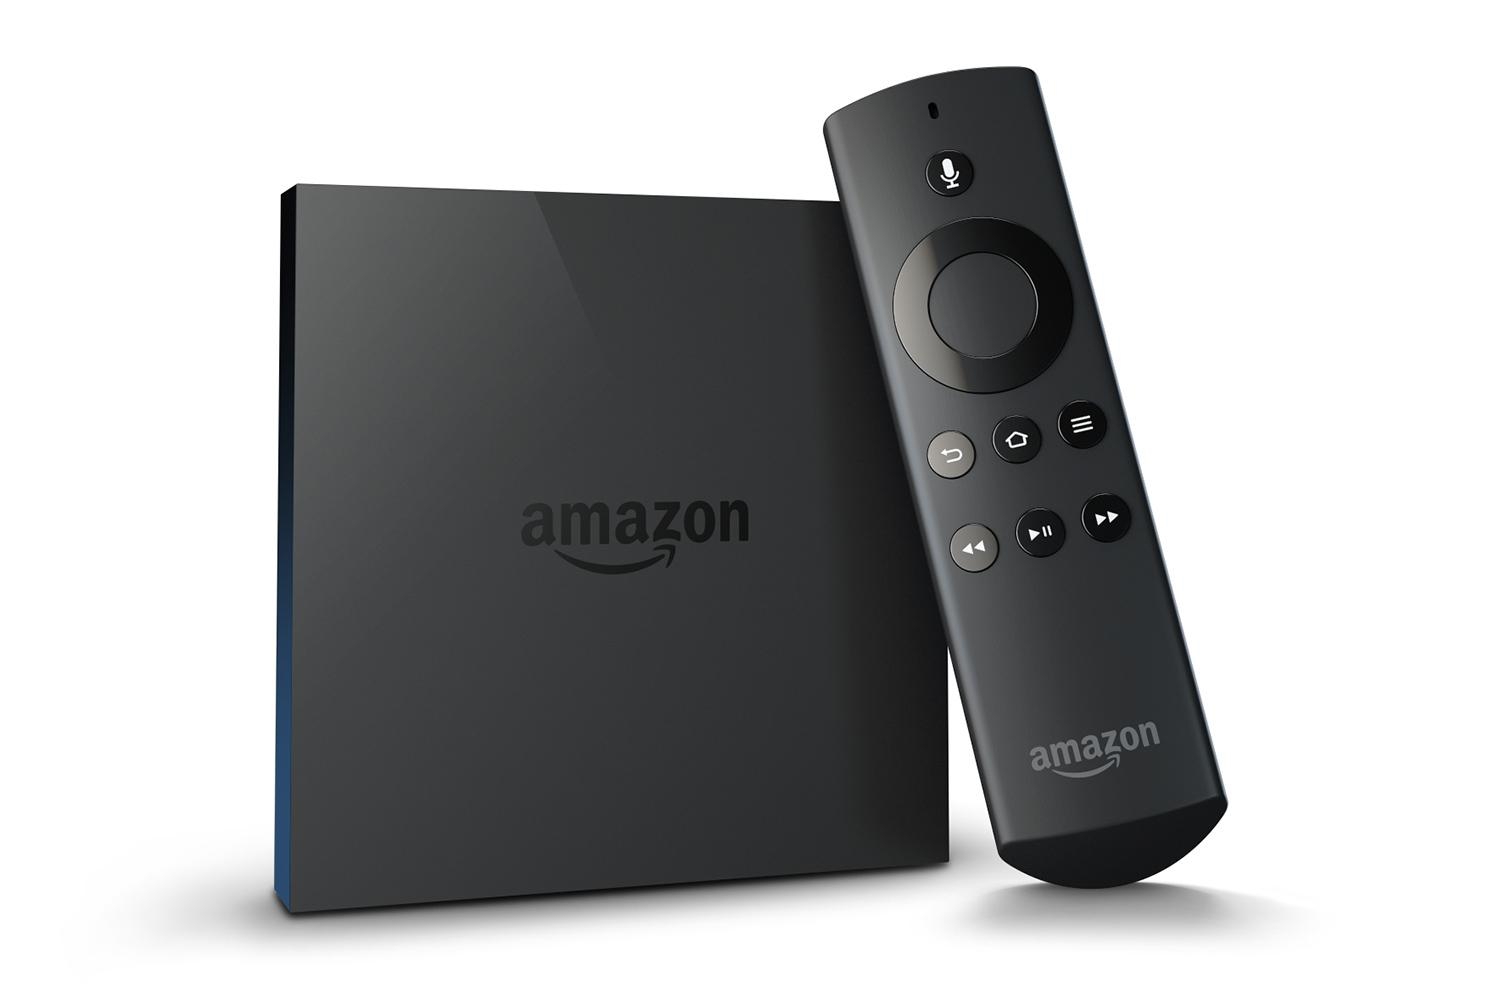 Connect Your Bluetooth Device To Amazon's Fire TV